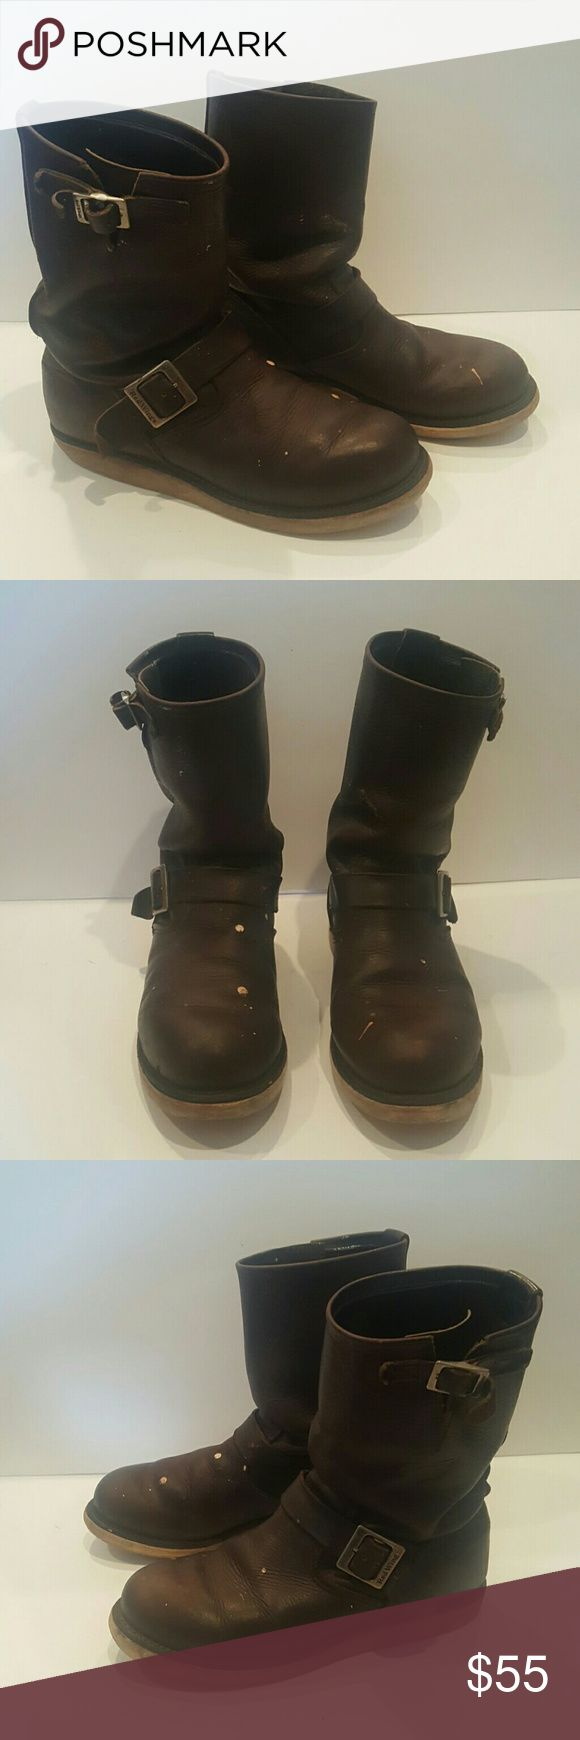 RED WING SHOES MENS SIZE 8 BROWN BOOTS RED WING SHOES MENS SIZE 8 PLENTY OF WEAR THROUGHOUT LOTS OF CHARACTER CAN BE RESTORED BY SHOEMAKER PAINT SPLATTER REALLY COOL ENGINEER WORK MOTOCYCLE BOOTS Red Wing Shoes Shoes Boots